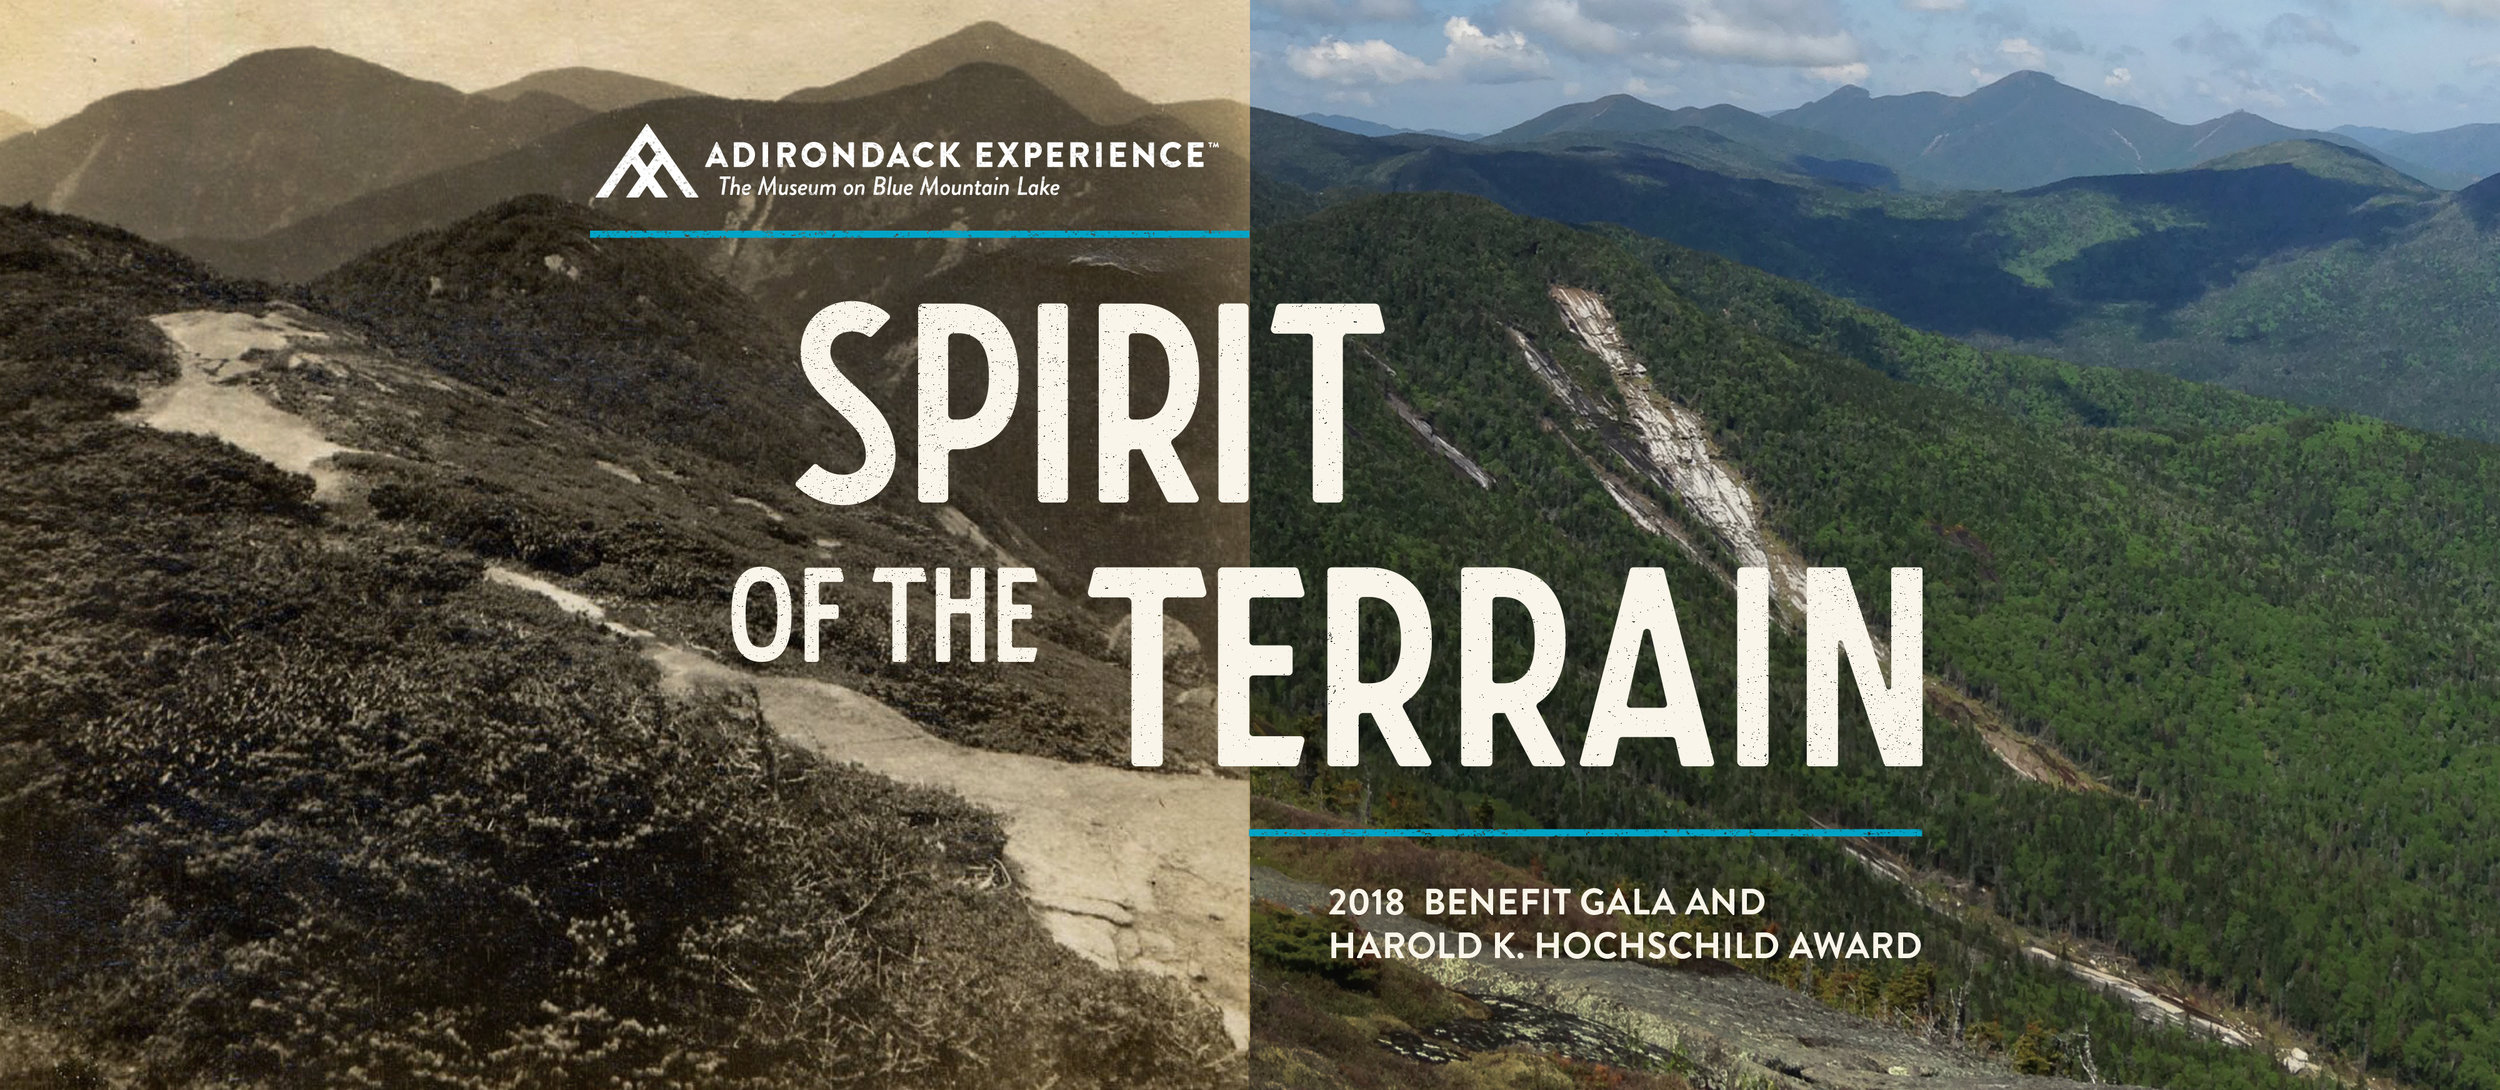 Spirit of the Terrain benefit gala title graphic over Adirondack Mountains photo